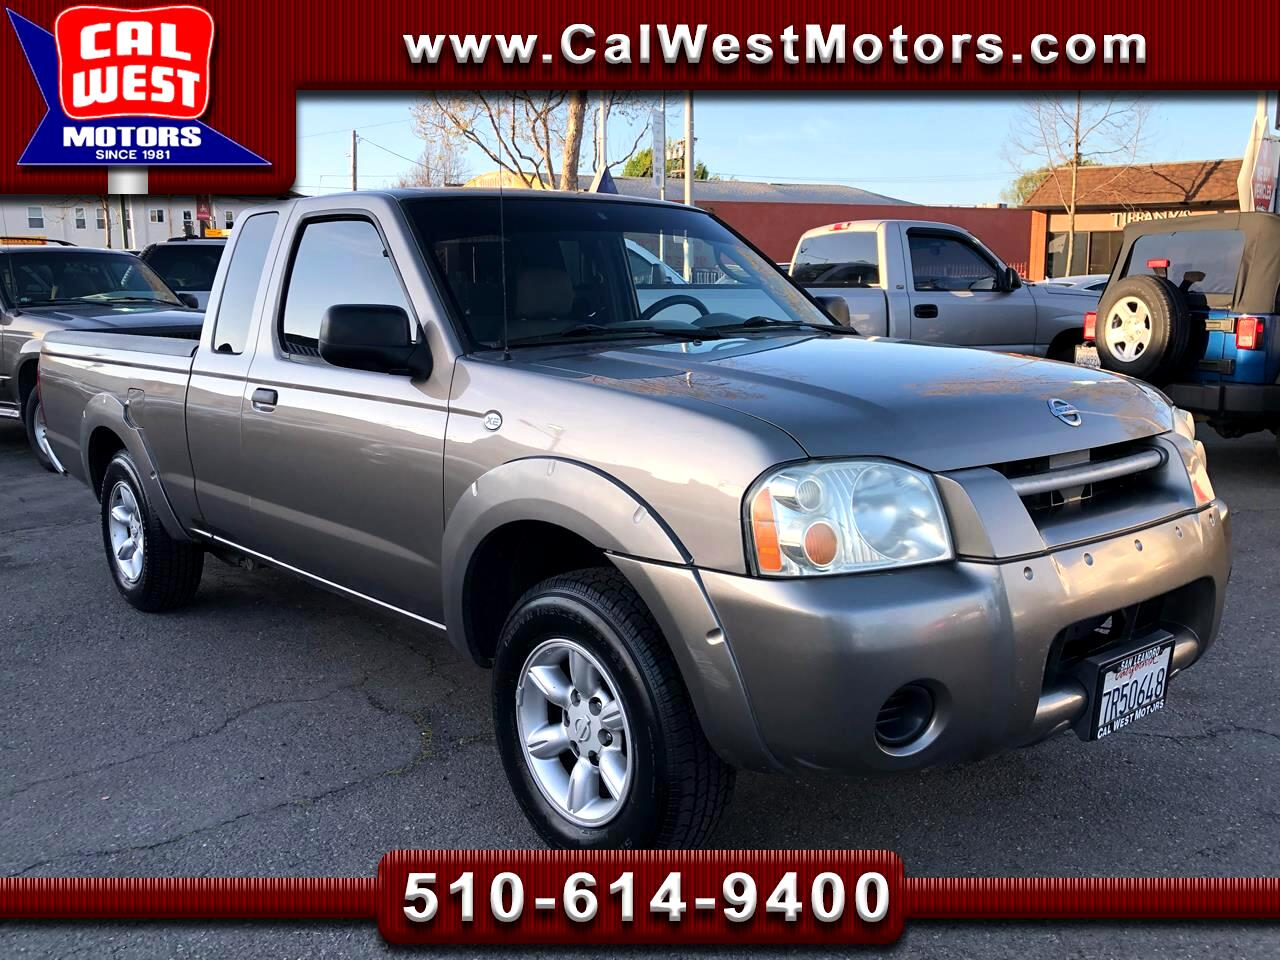 2004 Nissan Frontier XE king Cab 5-Speed AC LowMiles VeryClean